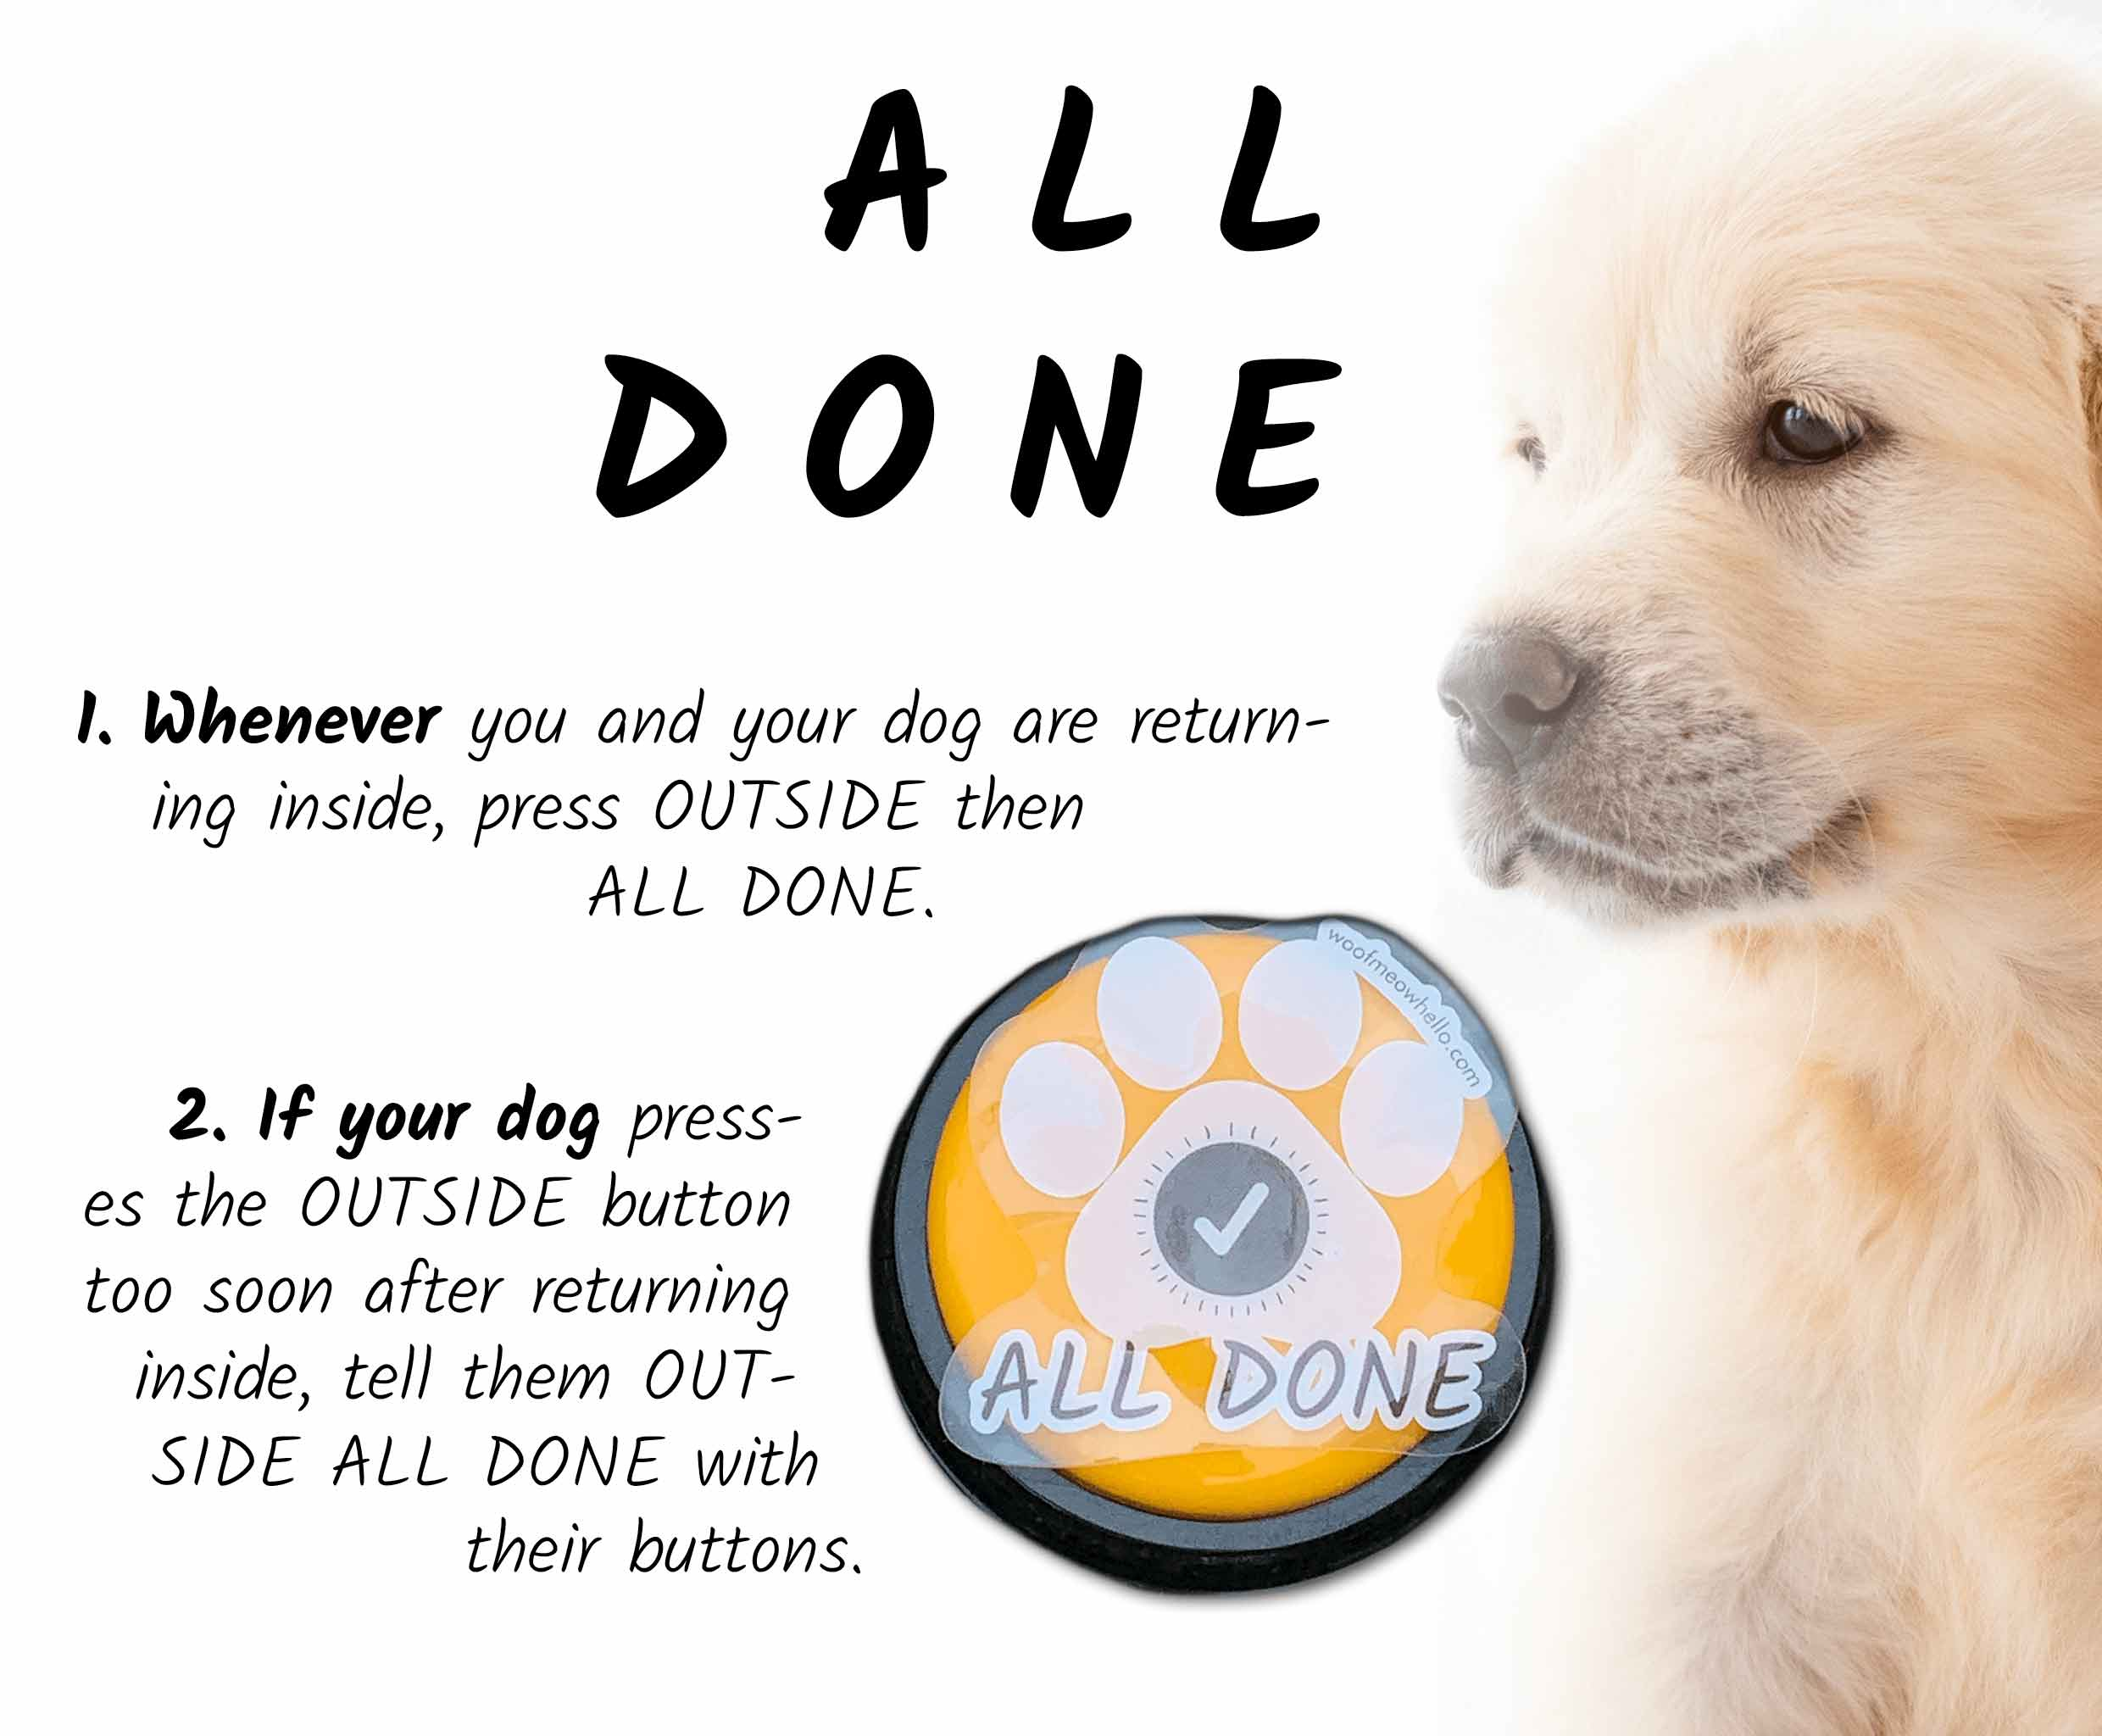 Whenever you and your dog are returning inside, press OUTSIDE then ALL DONE. If your dog presses the OUTSIDE button too soon after returning inside, tell them OUTSIDE ALL DONE with their buttons.